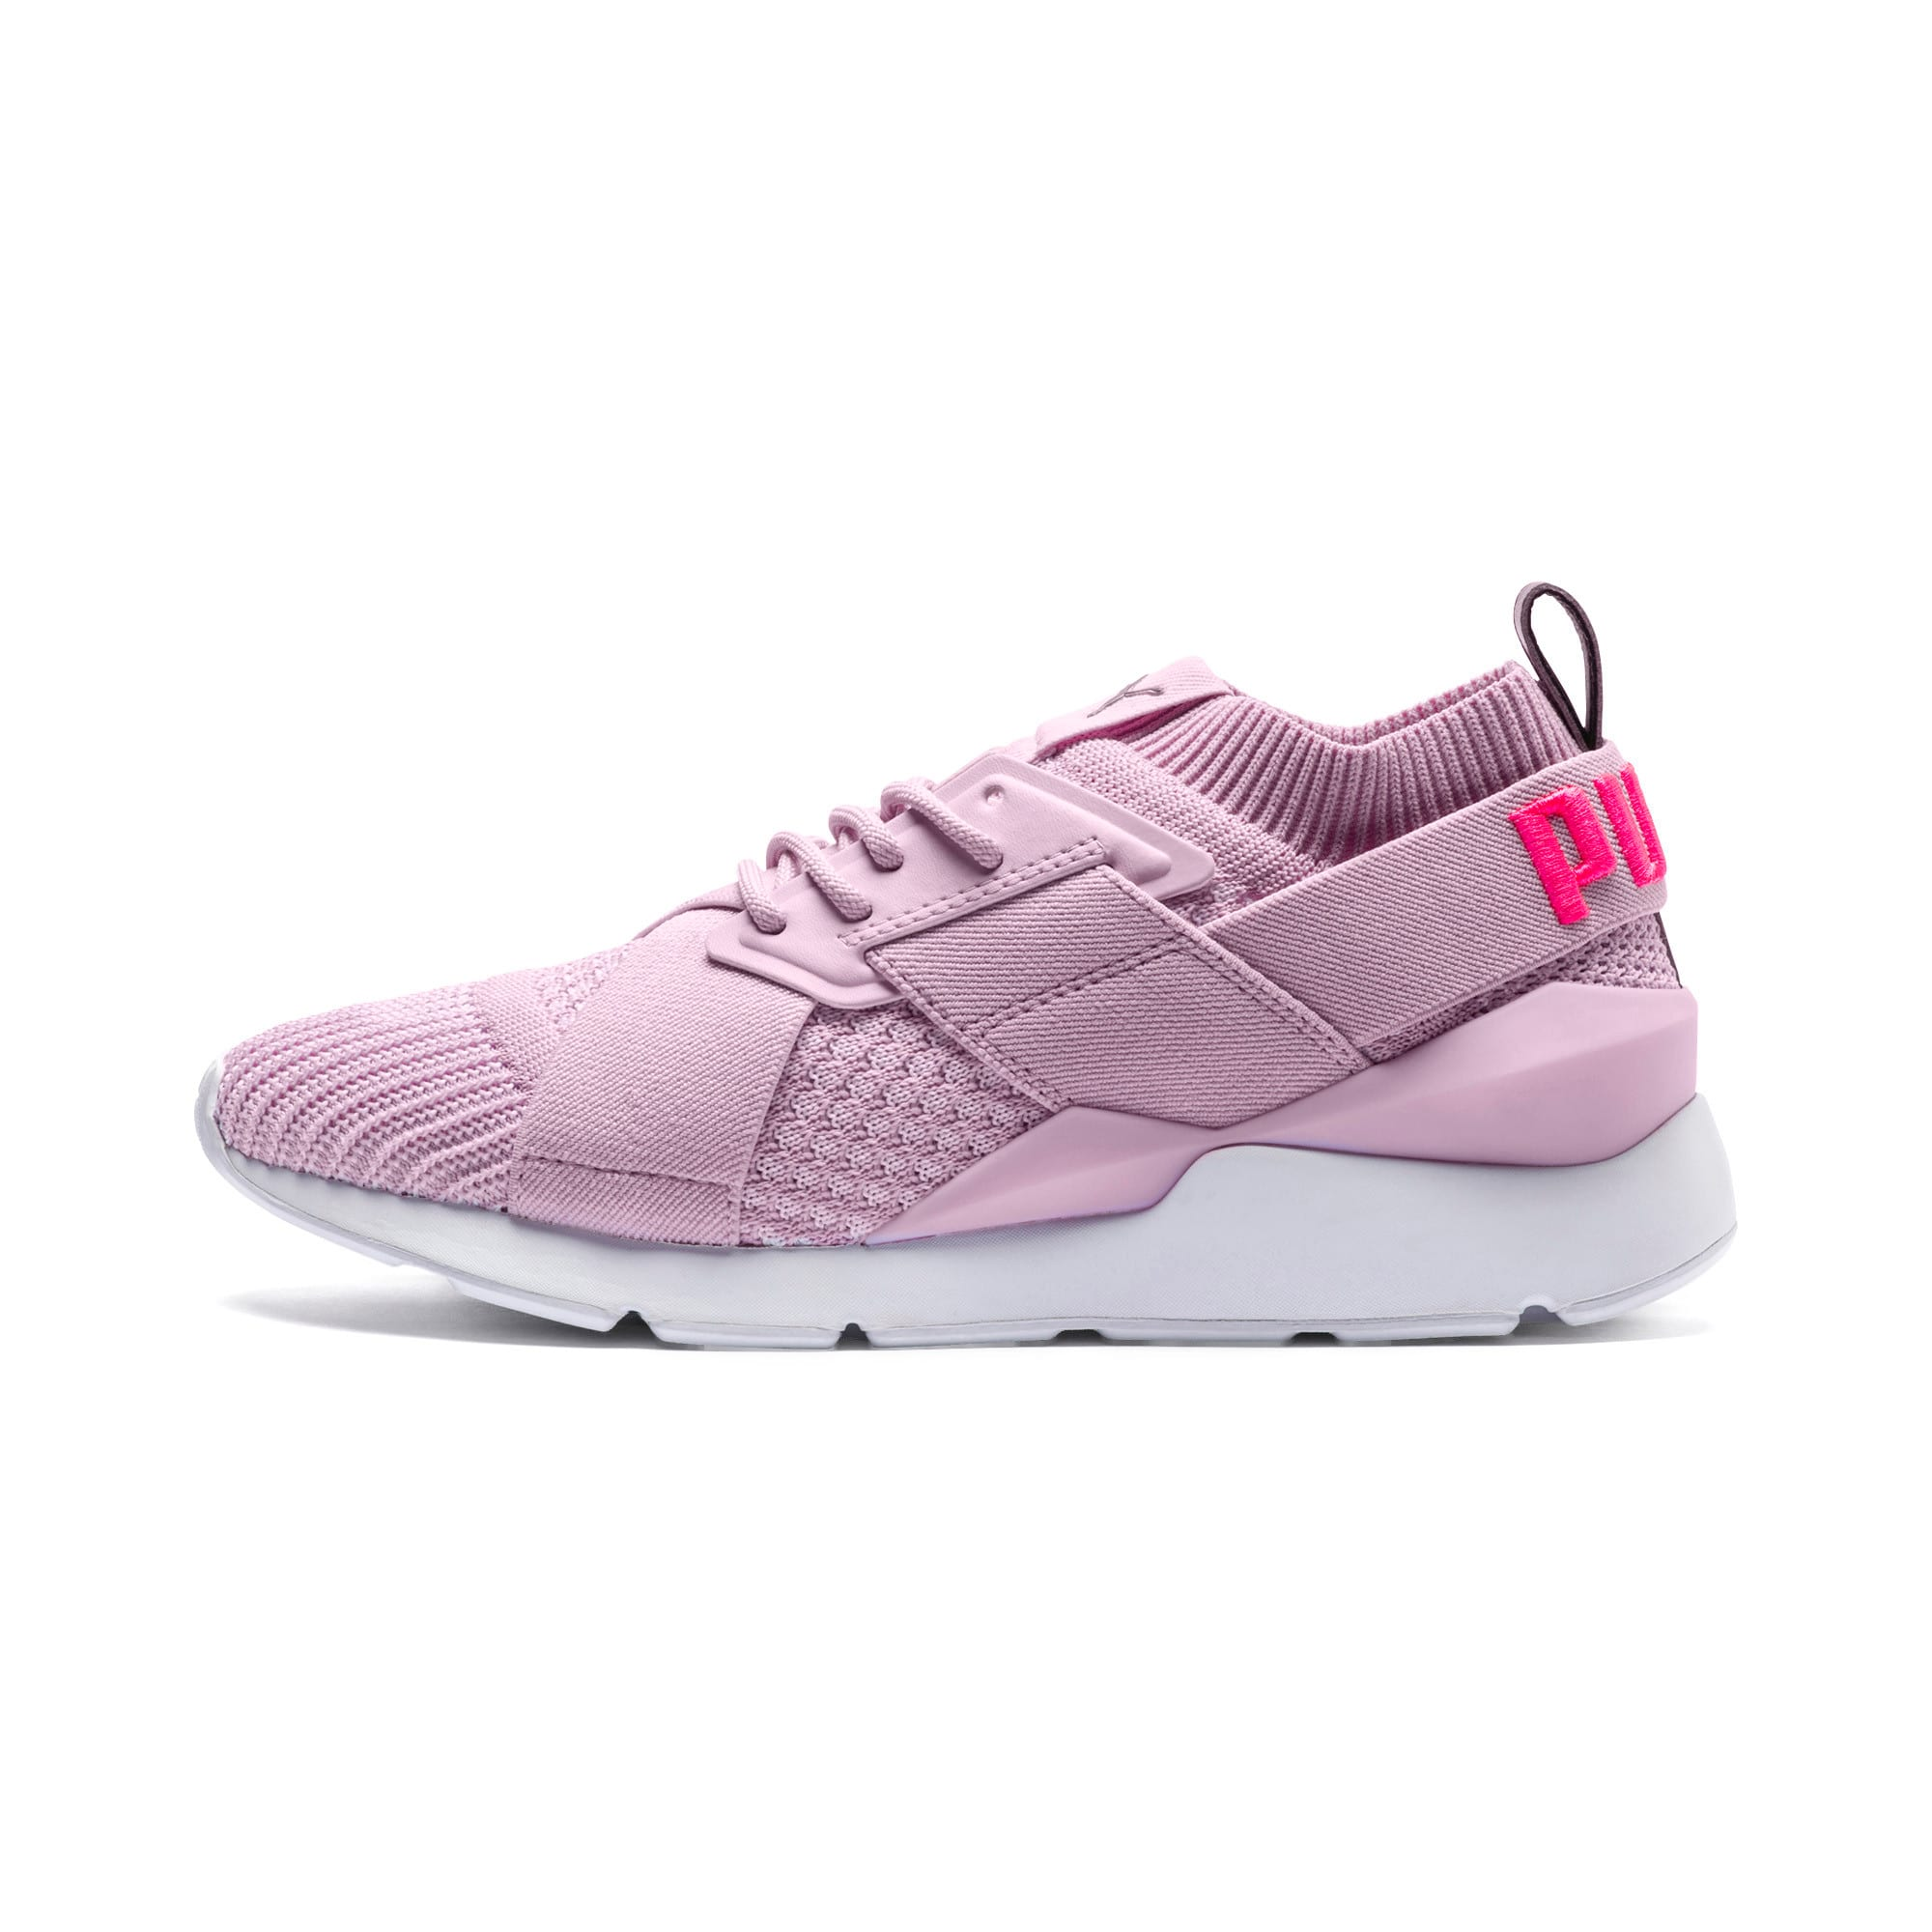 Thumbnail 1 of Muse evoKNIT Women's Trainers, Winsome Orchid, medium-IND